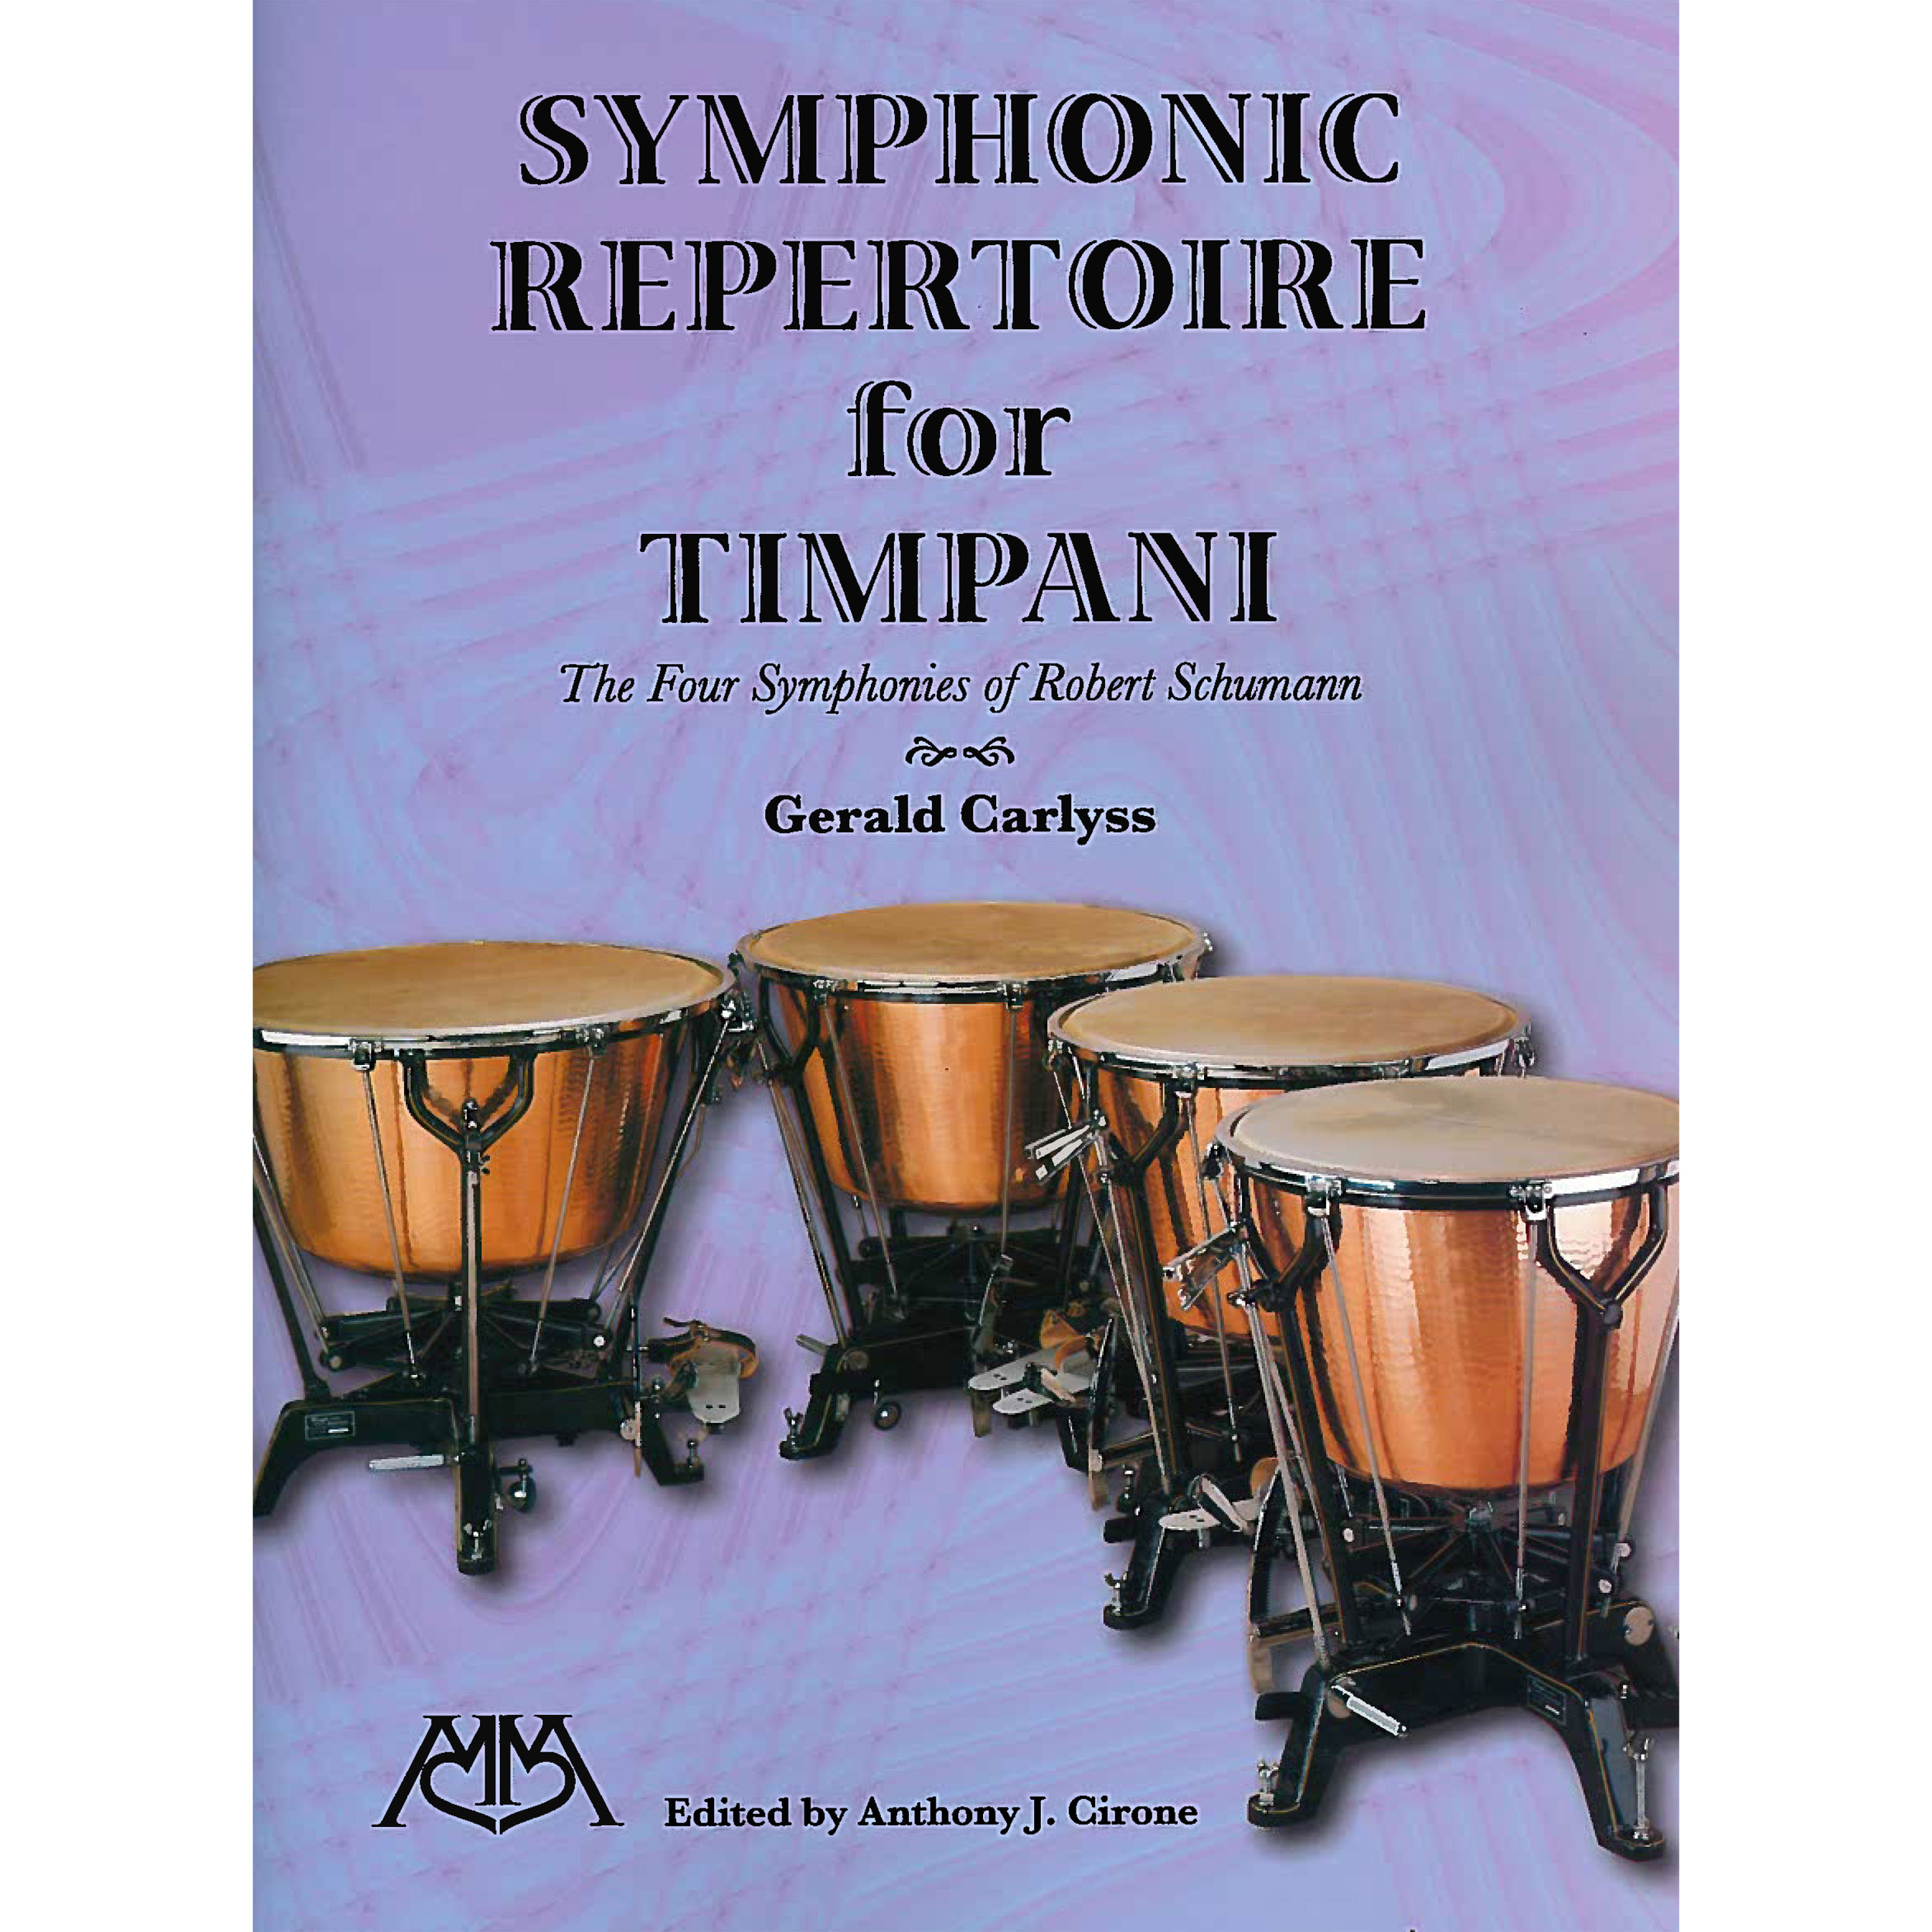 Symphonic Repertoire for Timpani: The Four Symphonies of Robert Schumann by Gerald Carlyss